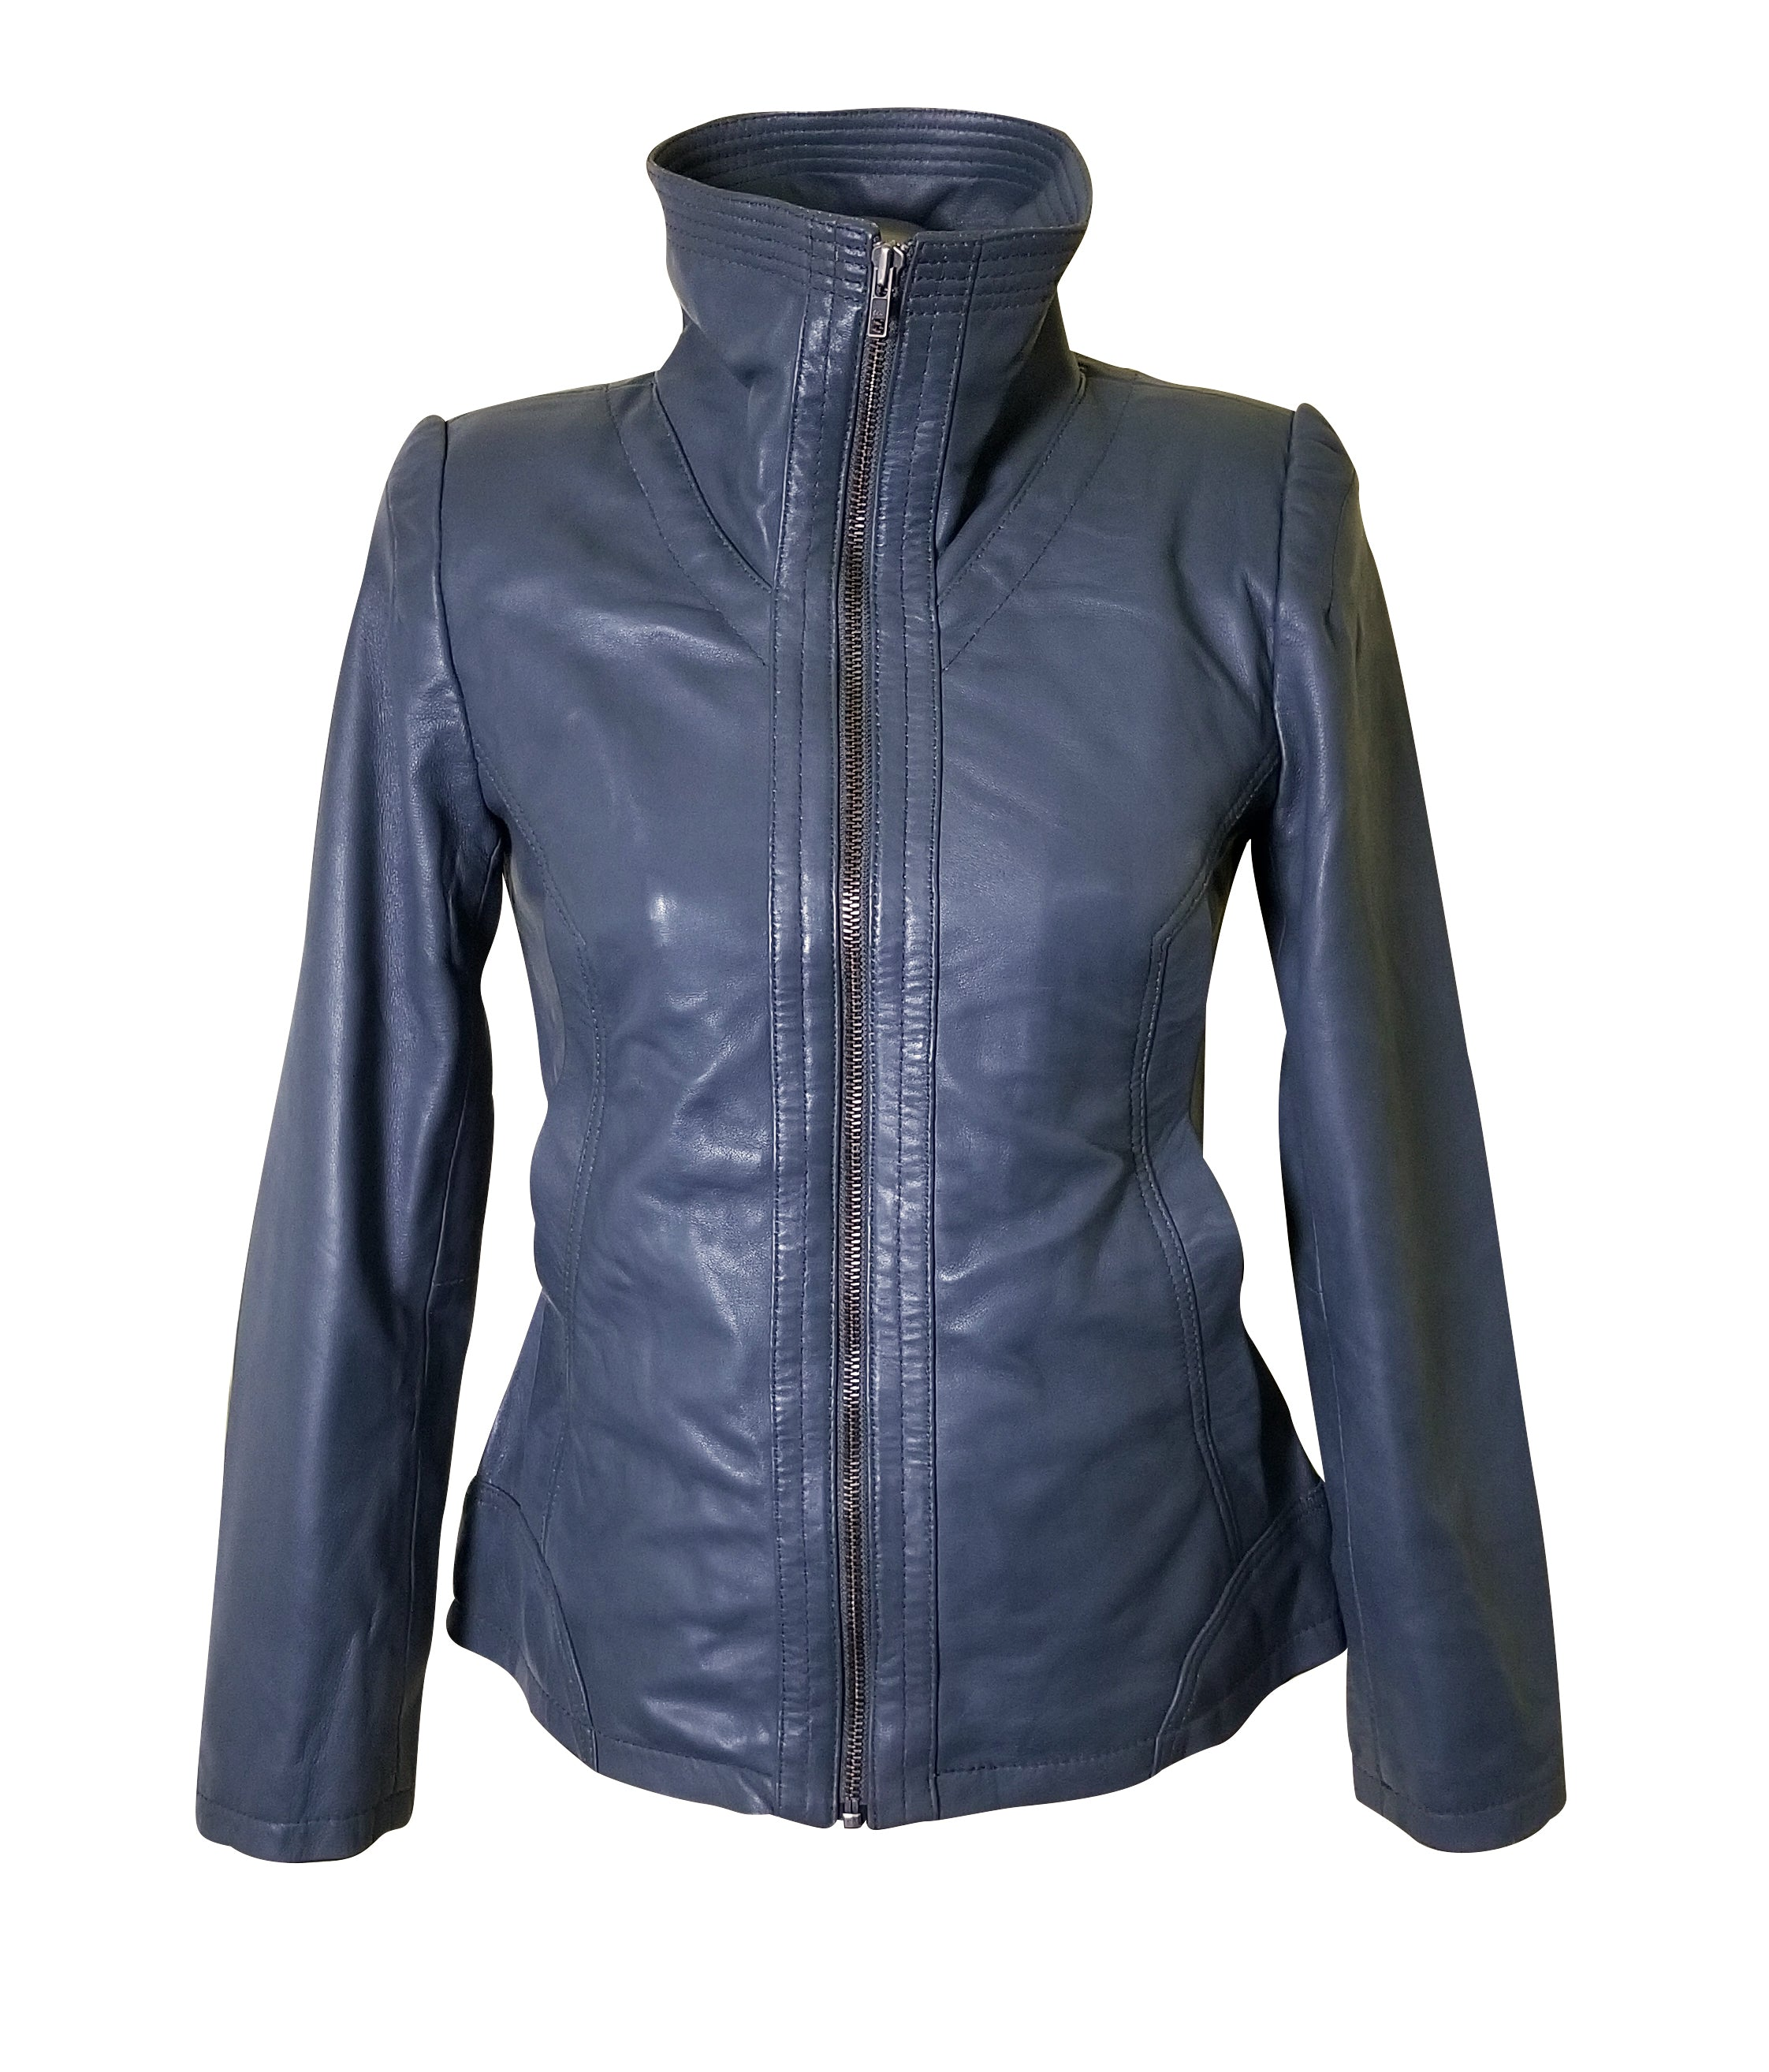 Marva Grey Leather jacket with flap collars